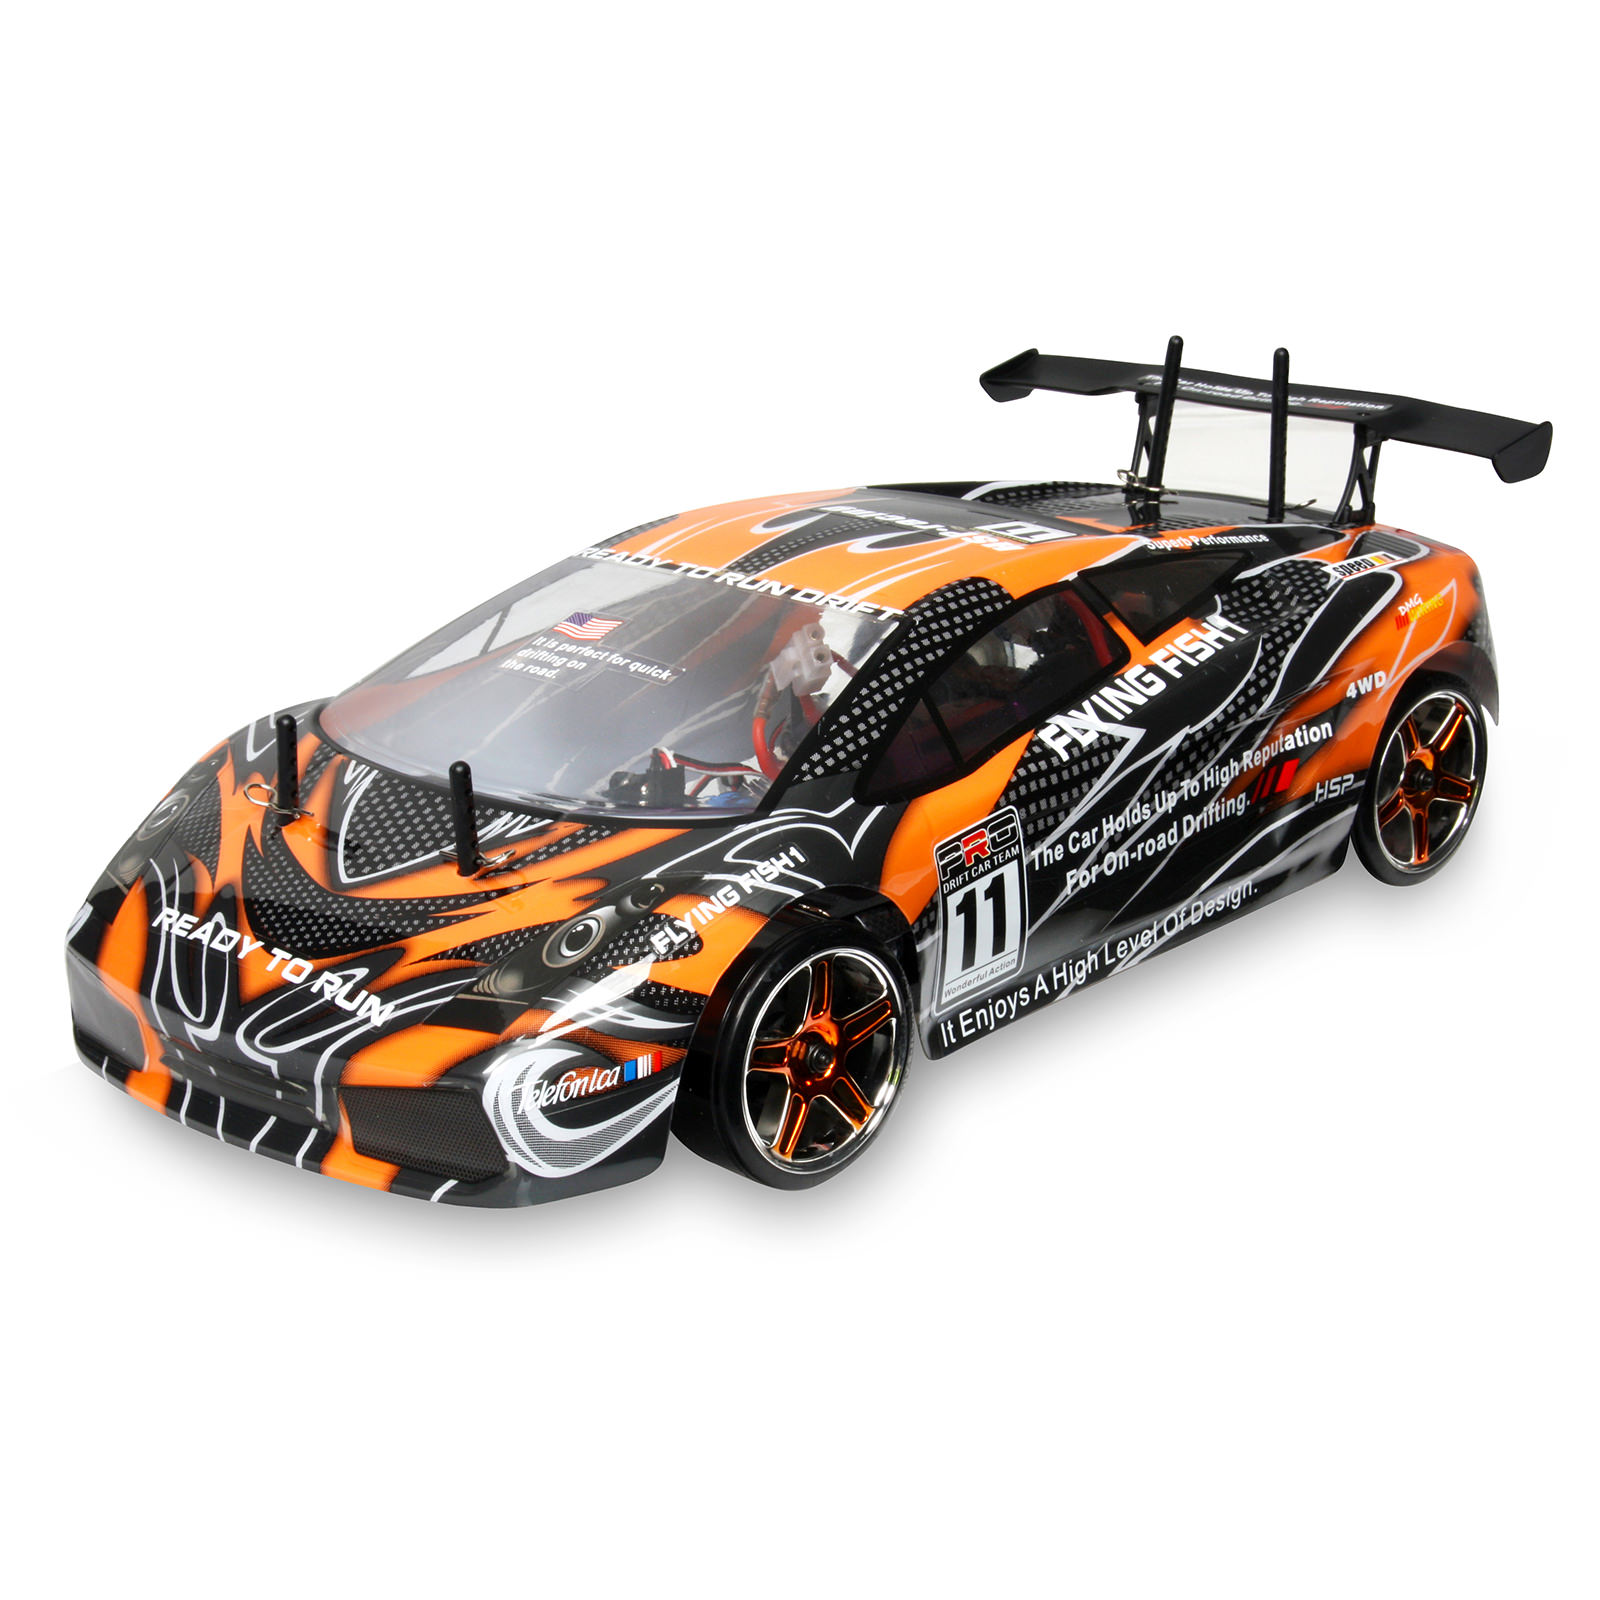 hsp 94123 10030 1 black rc car at hobby warehouse. Black Bedroom Furniture Sets. Home Design Ideas